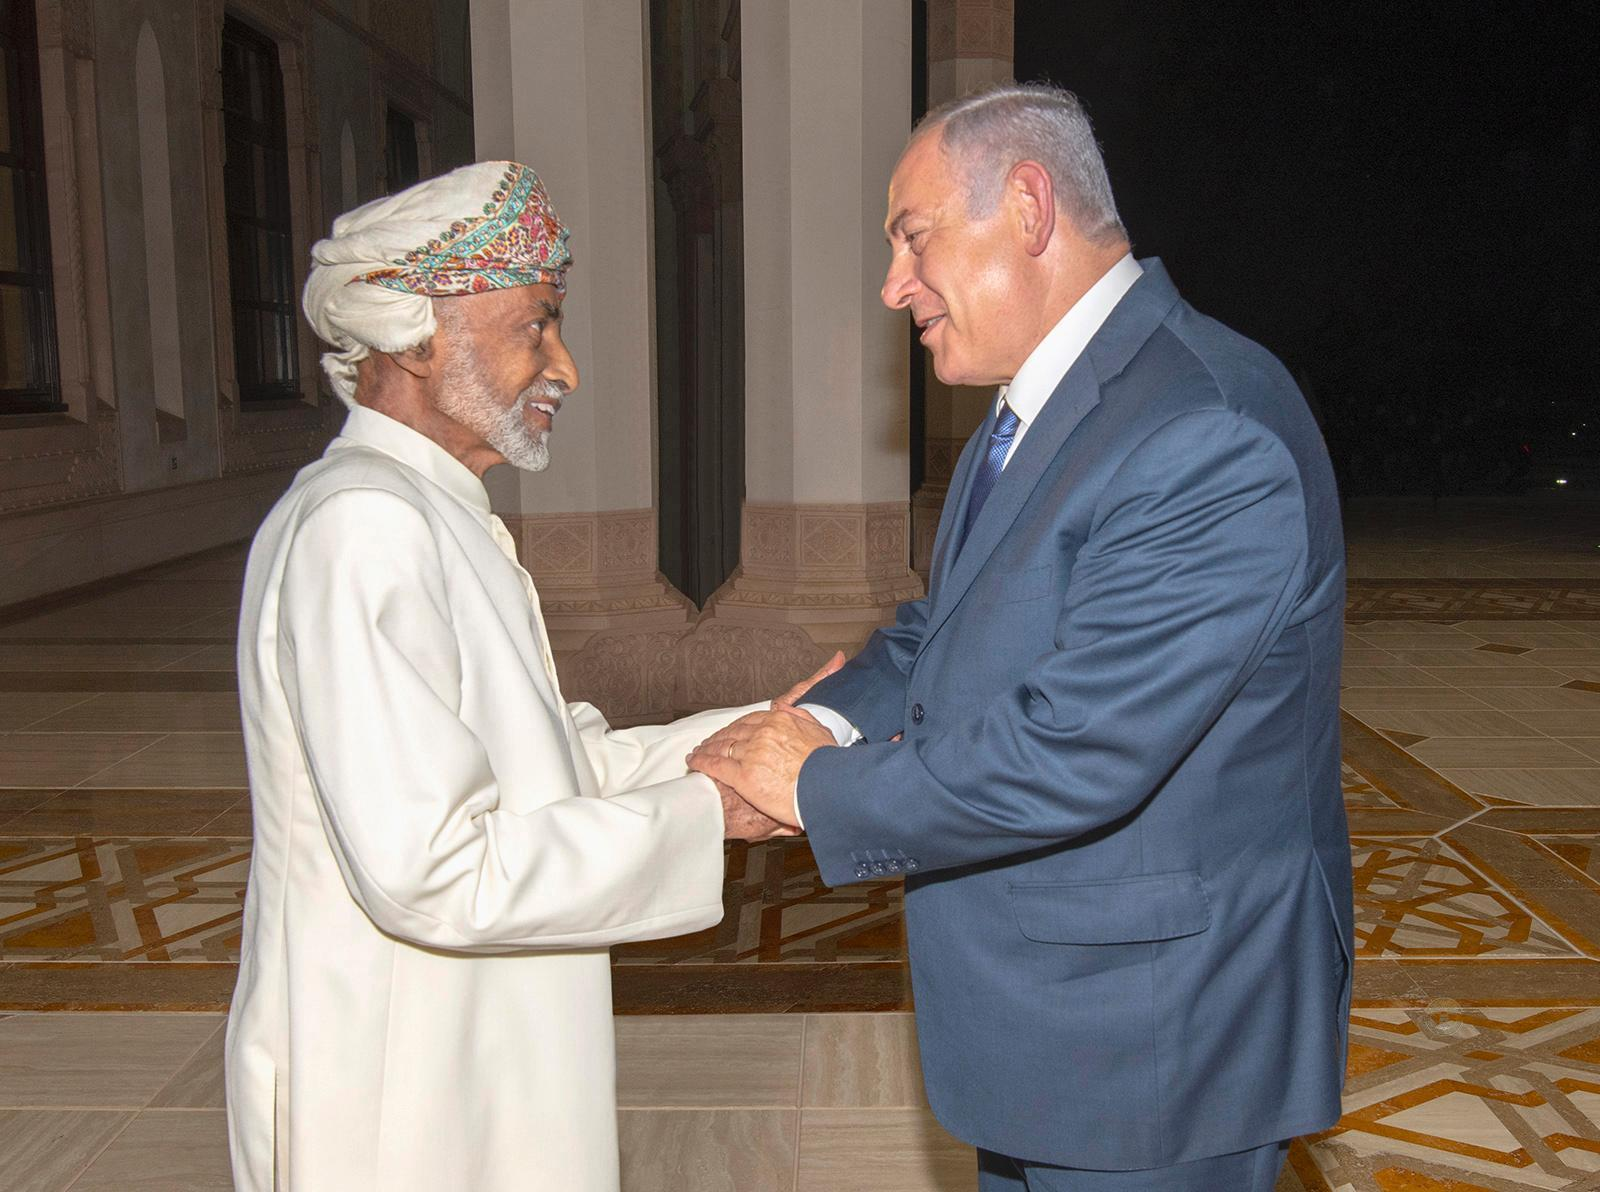 Oman's Sultan Qaboos welcomes Israeli Prime Minister Netanyahu in Muscat, Oman in October 2018. Thanks for intensive efforts by Israel to forge closer relationships with Arab Gulf states, this was the first visit to Oman by an Israeli head of state since 1996.